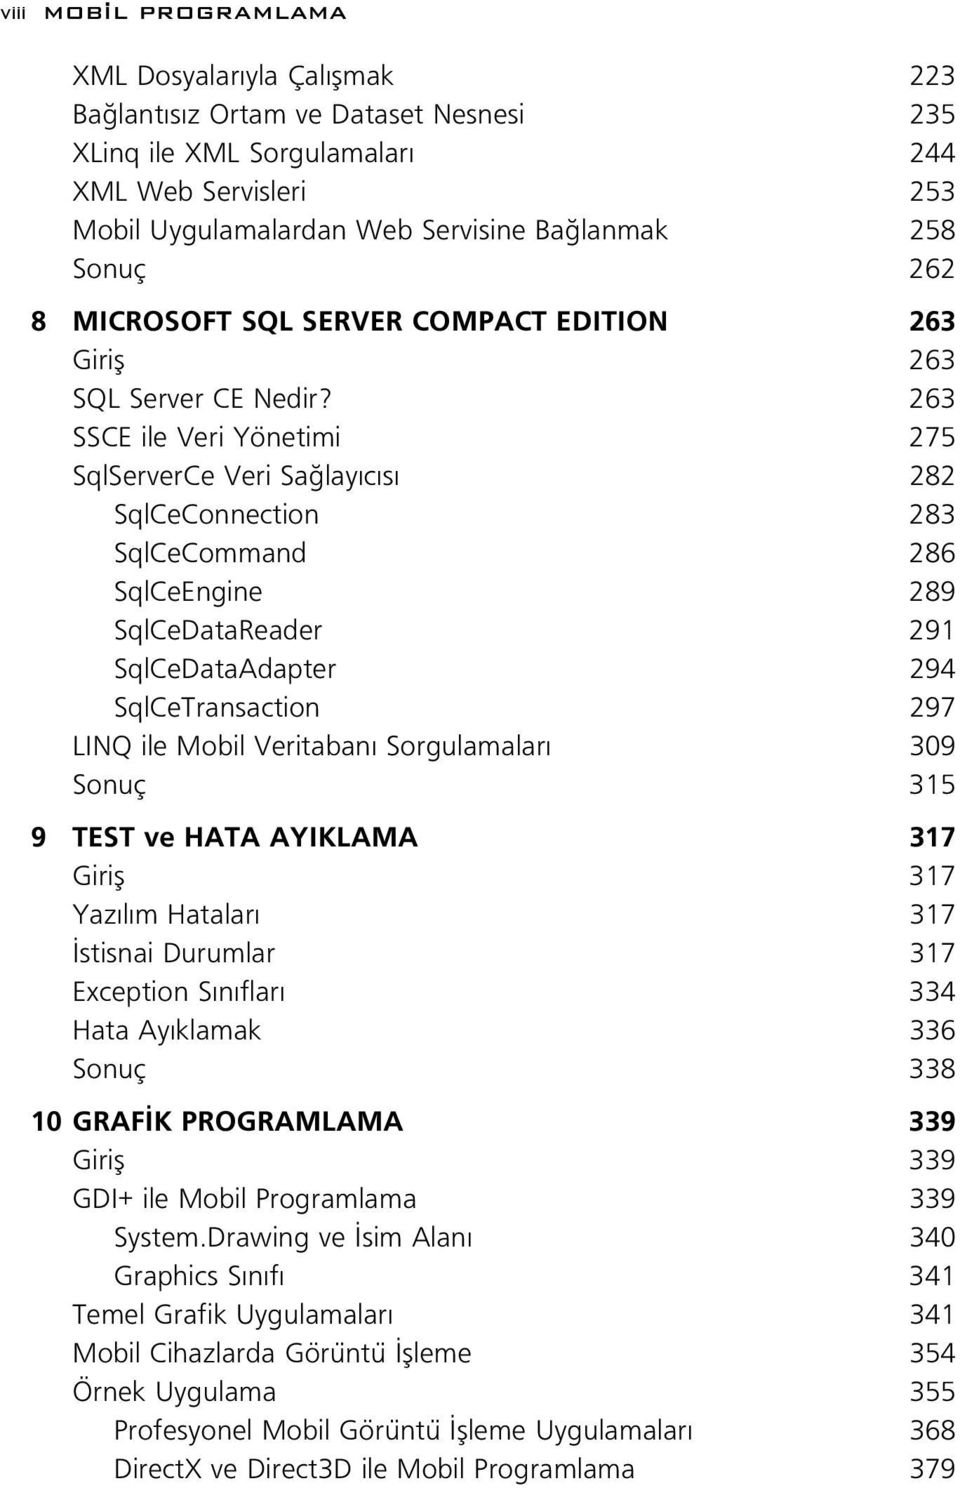 263 SSCE ile Veri Yönetimi 275 SqlServerCe Veri Sa lay c s 282 SqlCeConnection 283 SqlCeCommand 286 SqlCeEngine 289 SqlCeDataReader 291 SqlCeDataAdapter 294 SqlCeTransaction 297 LINQ ile Mobil